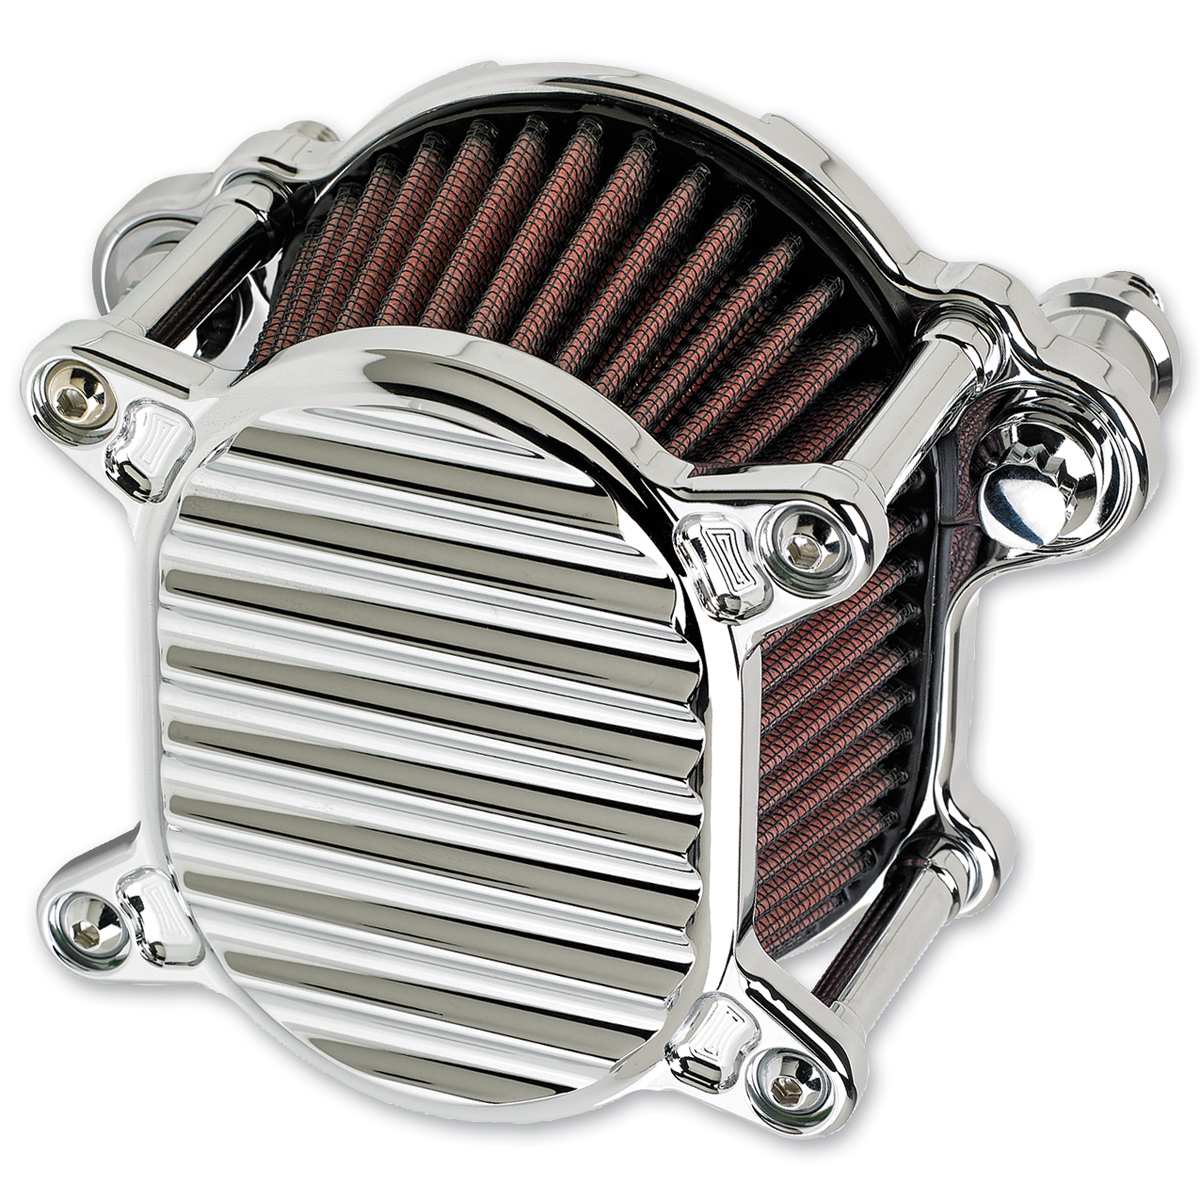 Joker Machine Omega Air Cleaner Finned Chrome